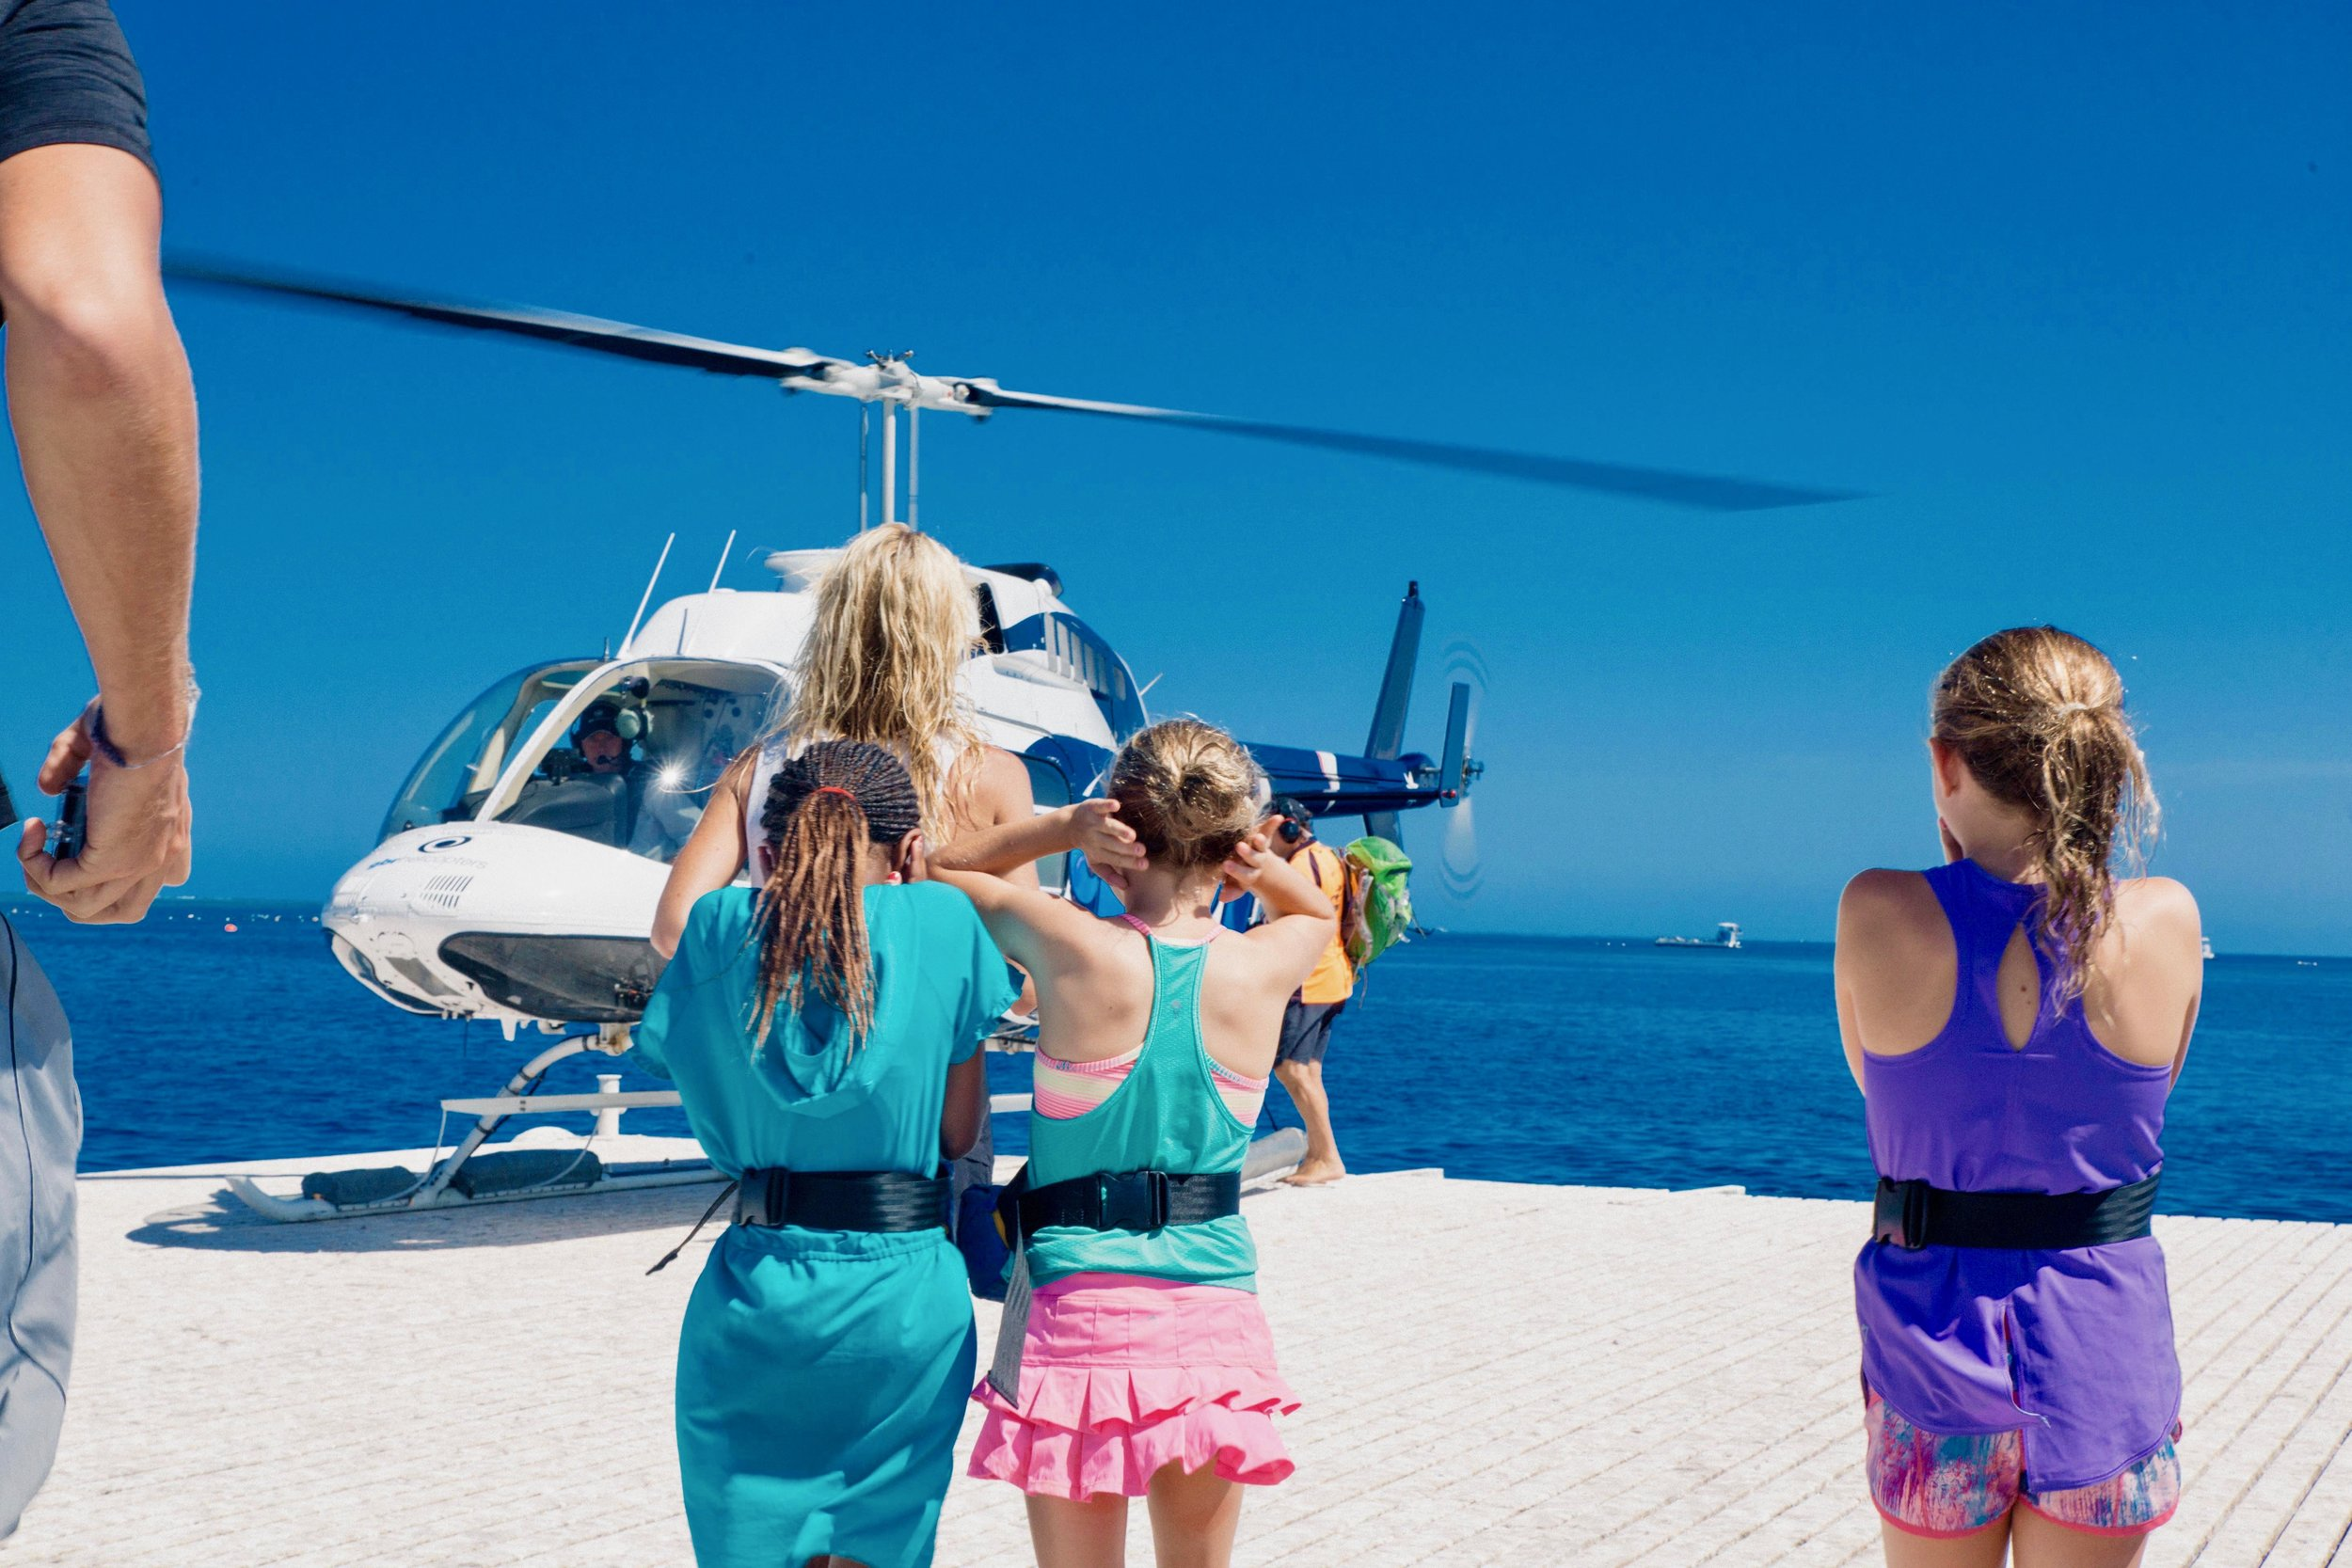 Now boarding......... 30 minute helicopter ride over the Great Barrier Reef in Australia. The 2,300km long eco-system is the world's largest living single structure, and can be seen from outer space. A UNESCO World Heritage site, this reef is home to countless species of colorful fish, turtles, dolphins and sharks.